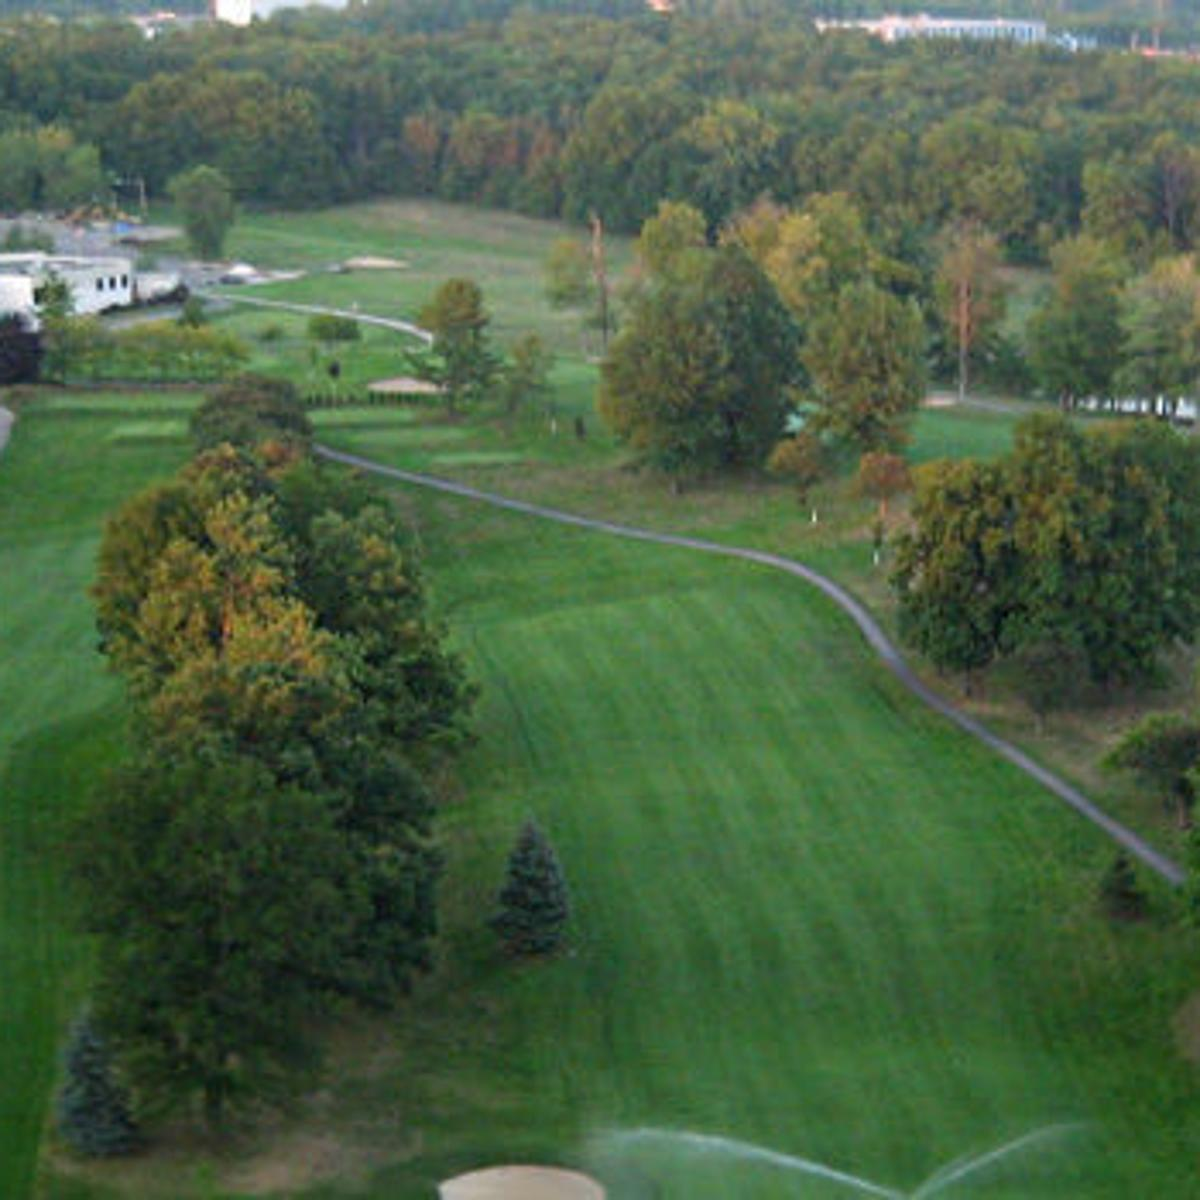 Hawthorne Valley Golf Club in Solon won't open in 2019 | Local News